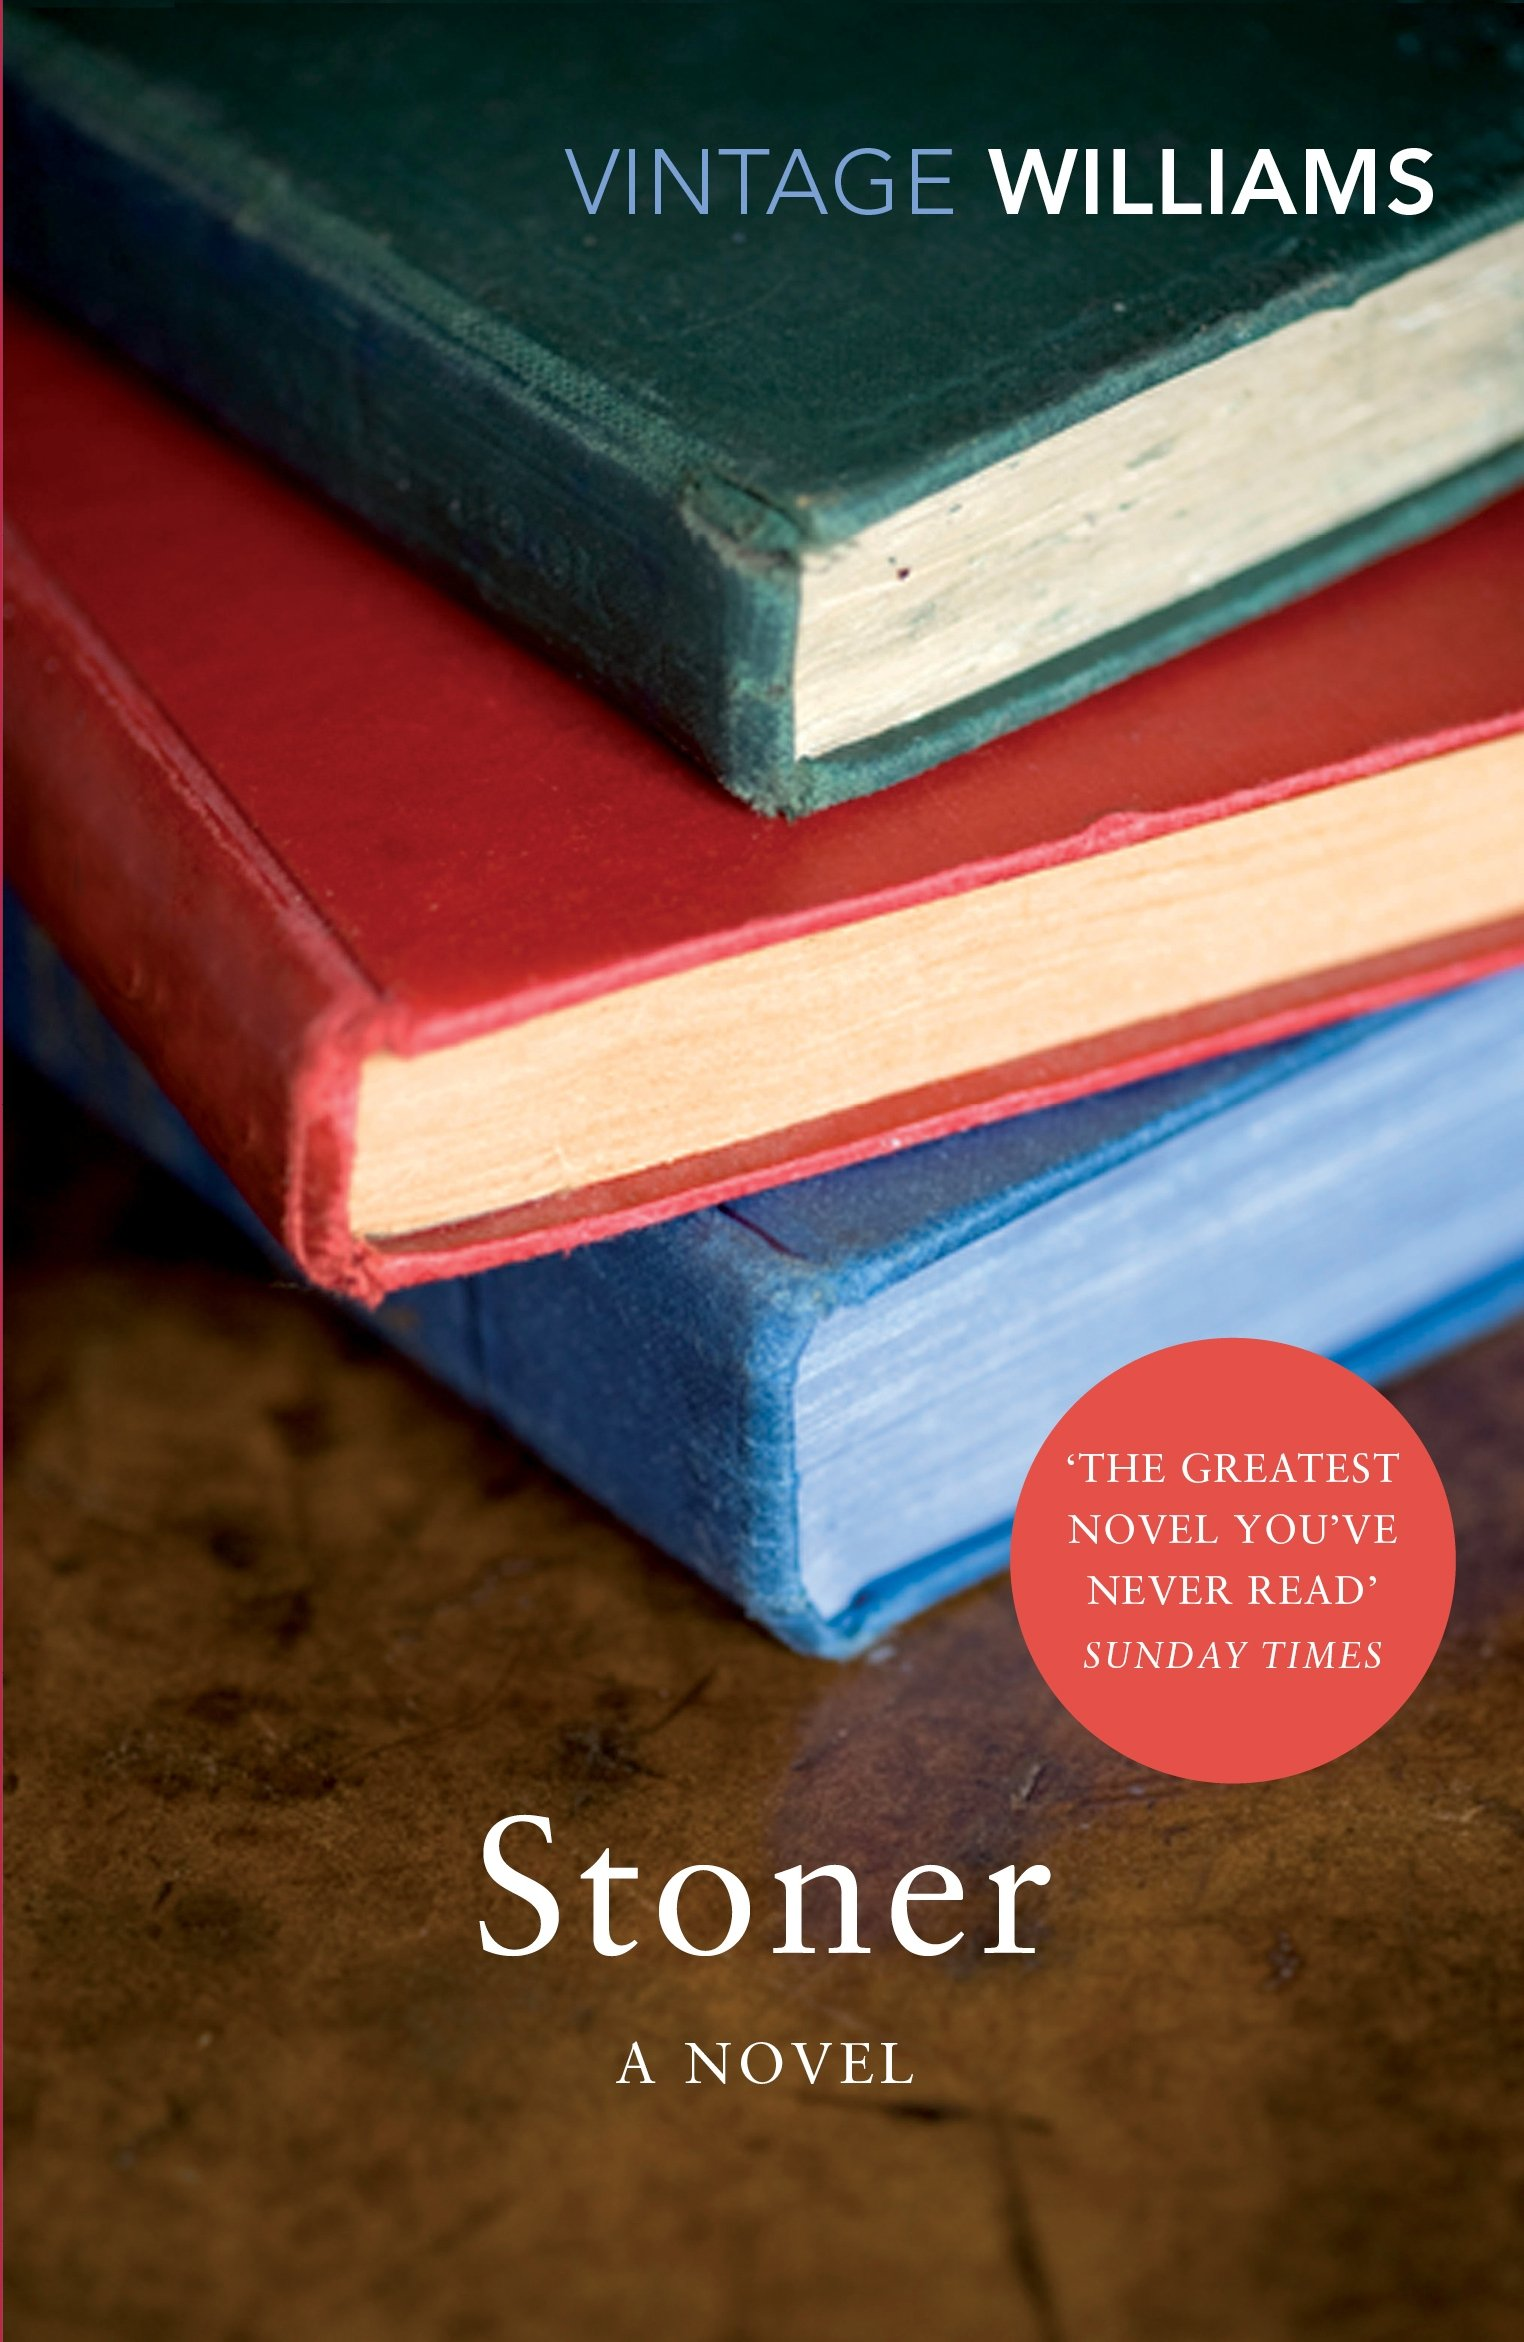 Buy Stoner A Novel Vintage Classics Book line at Low Prices